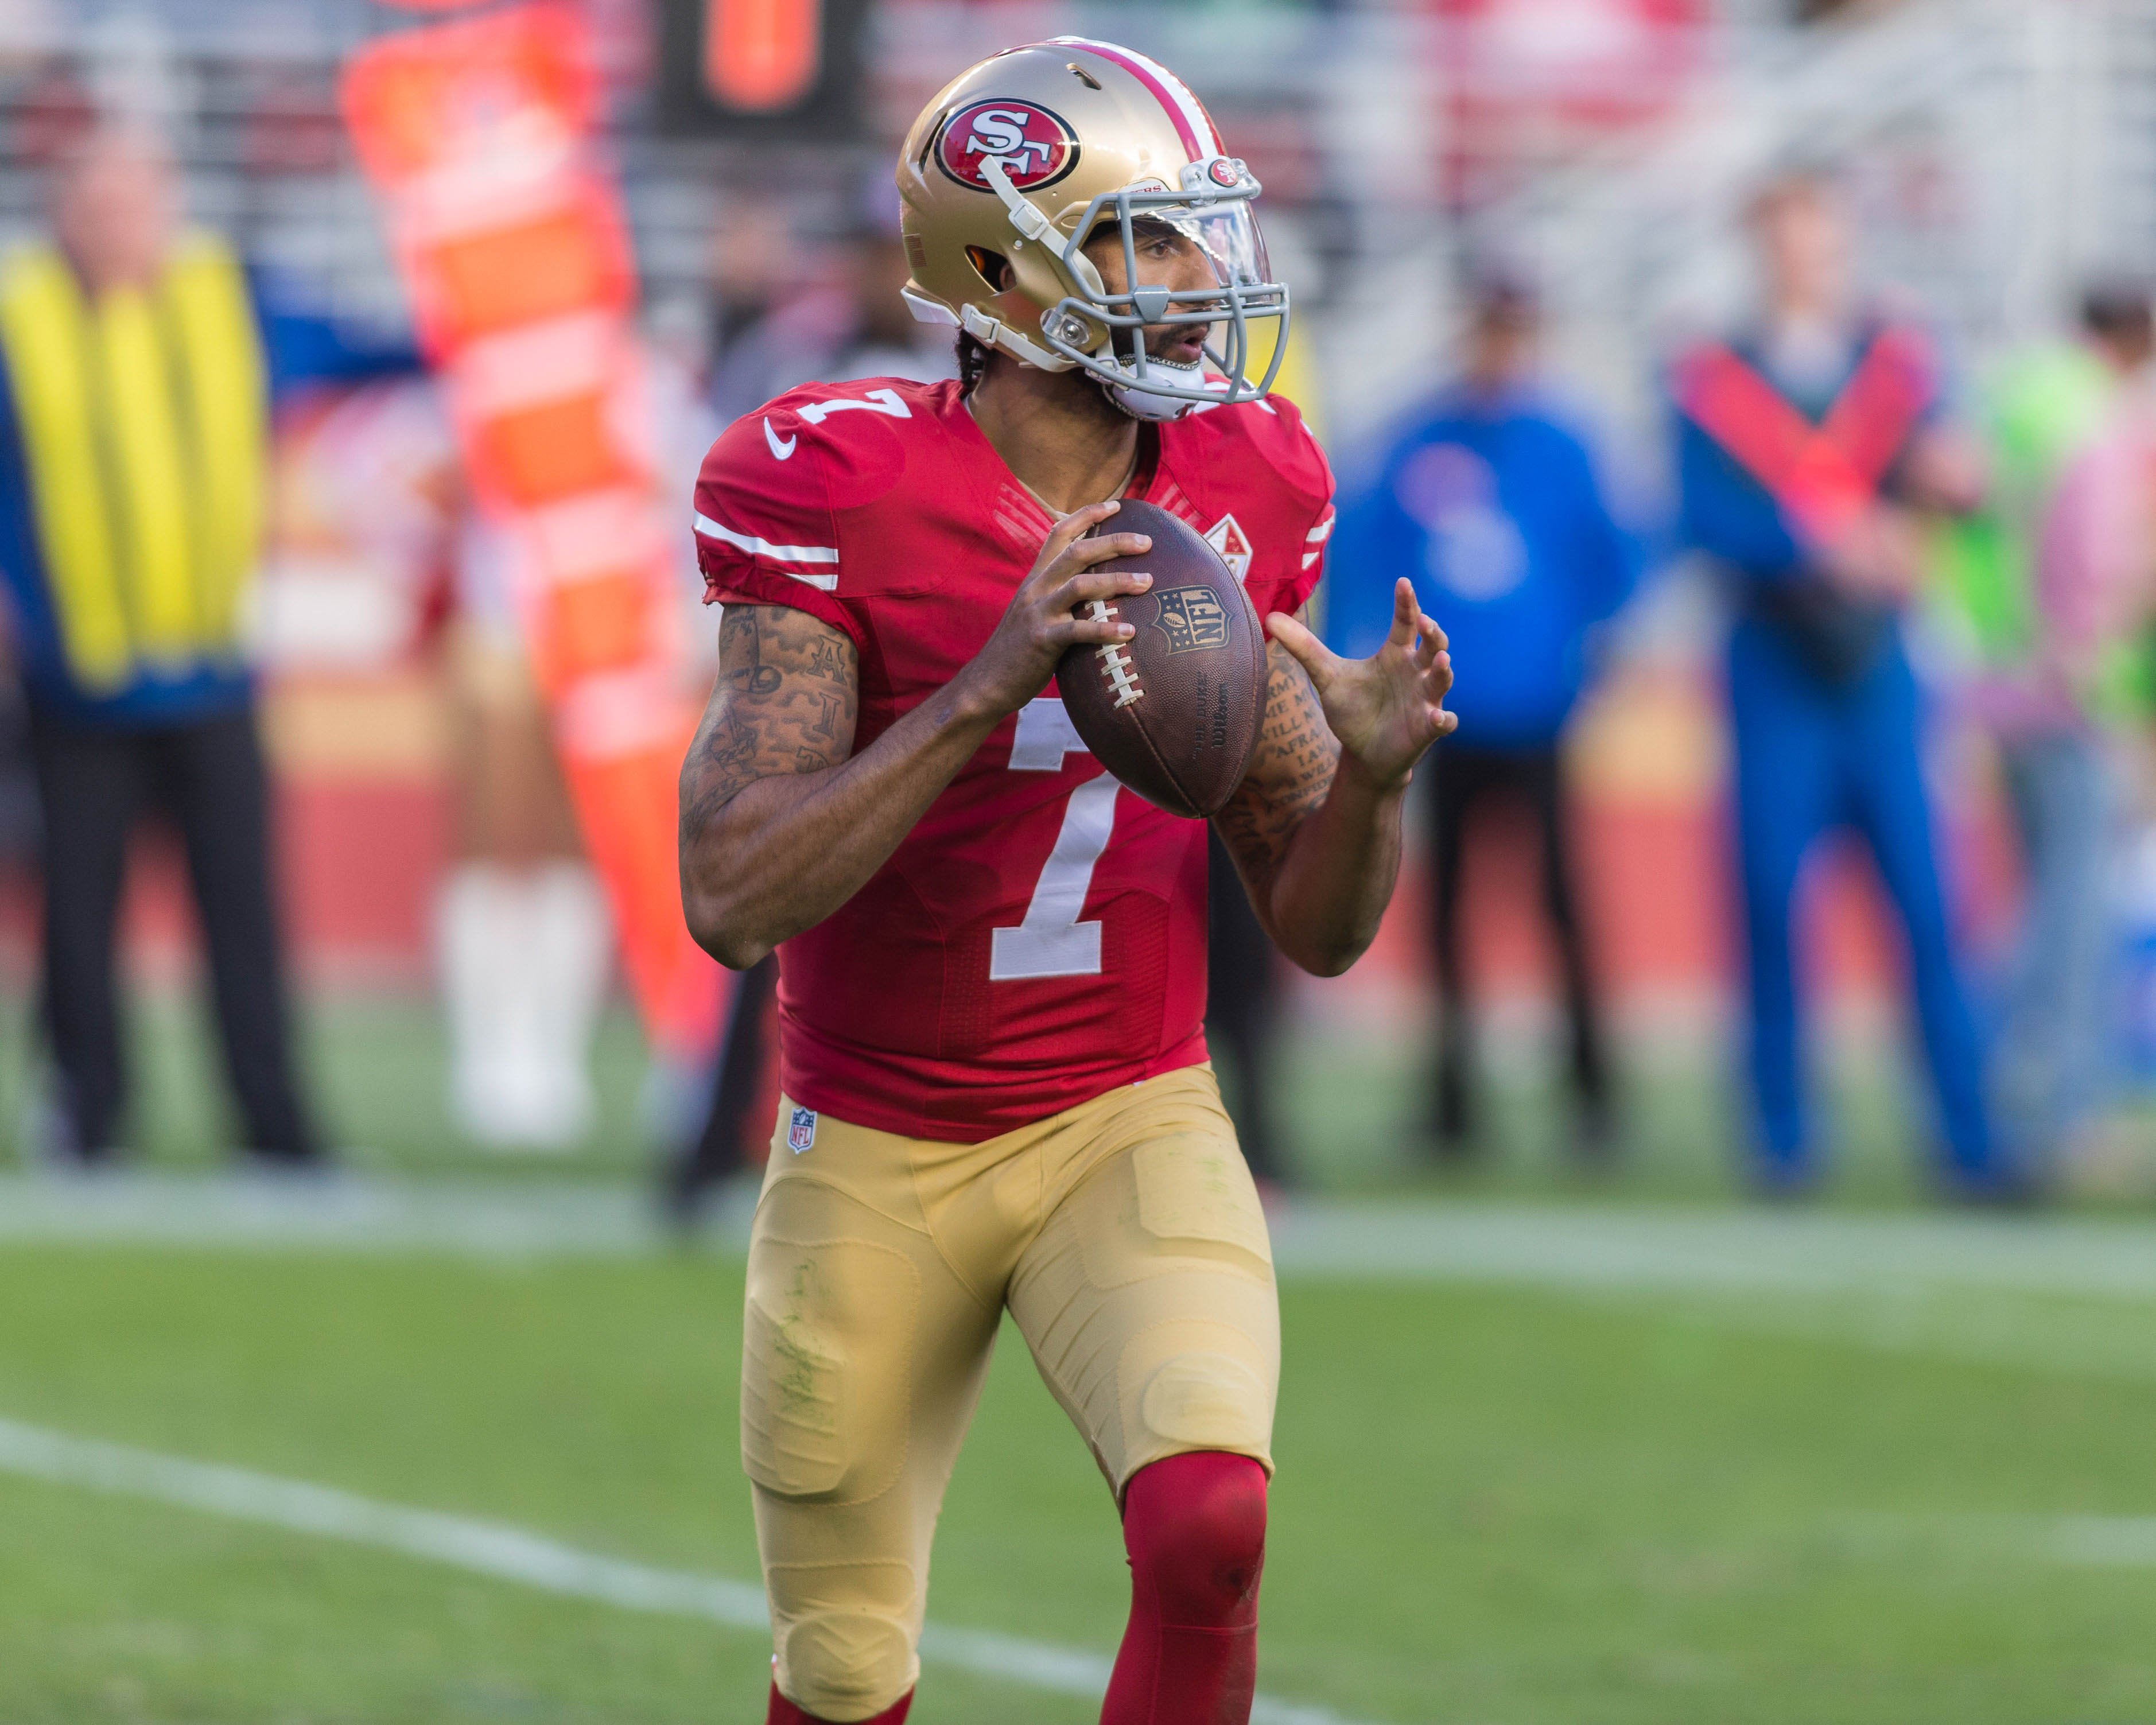 Carolina Panthers should sign Colin Kaepernick for 2019